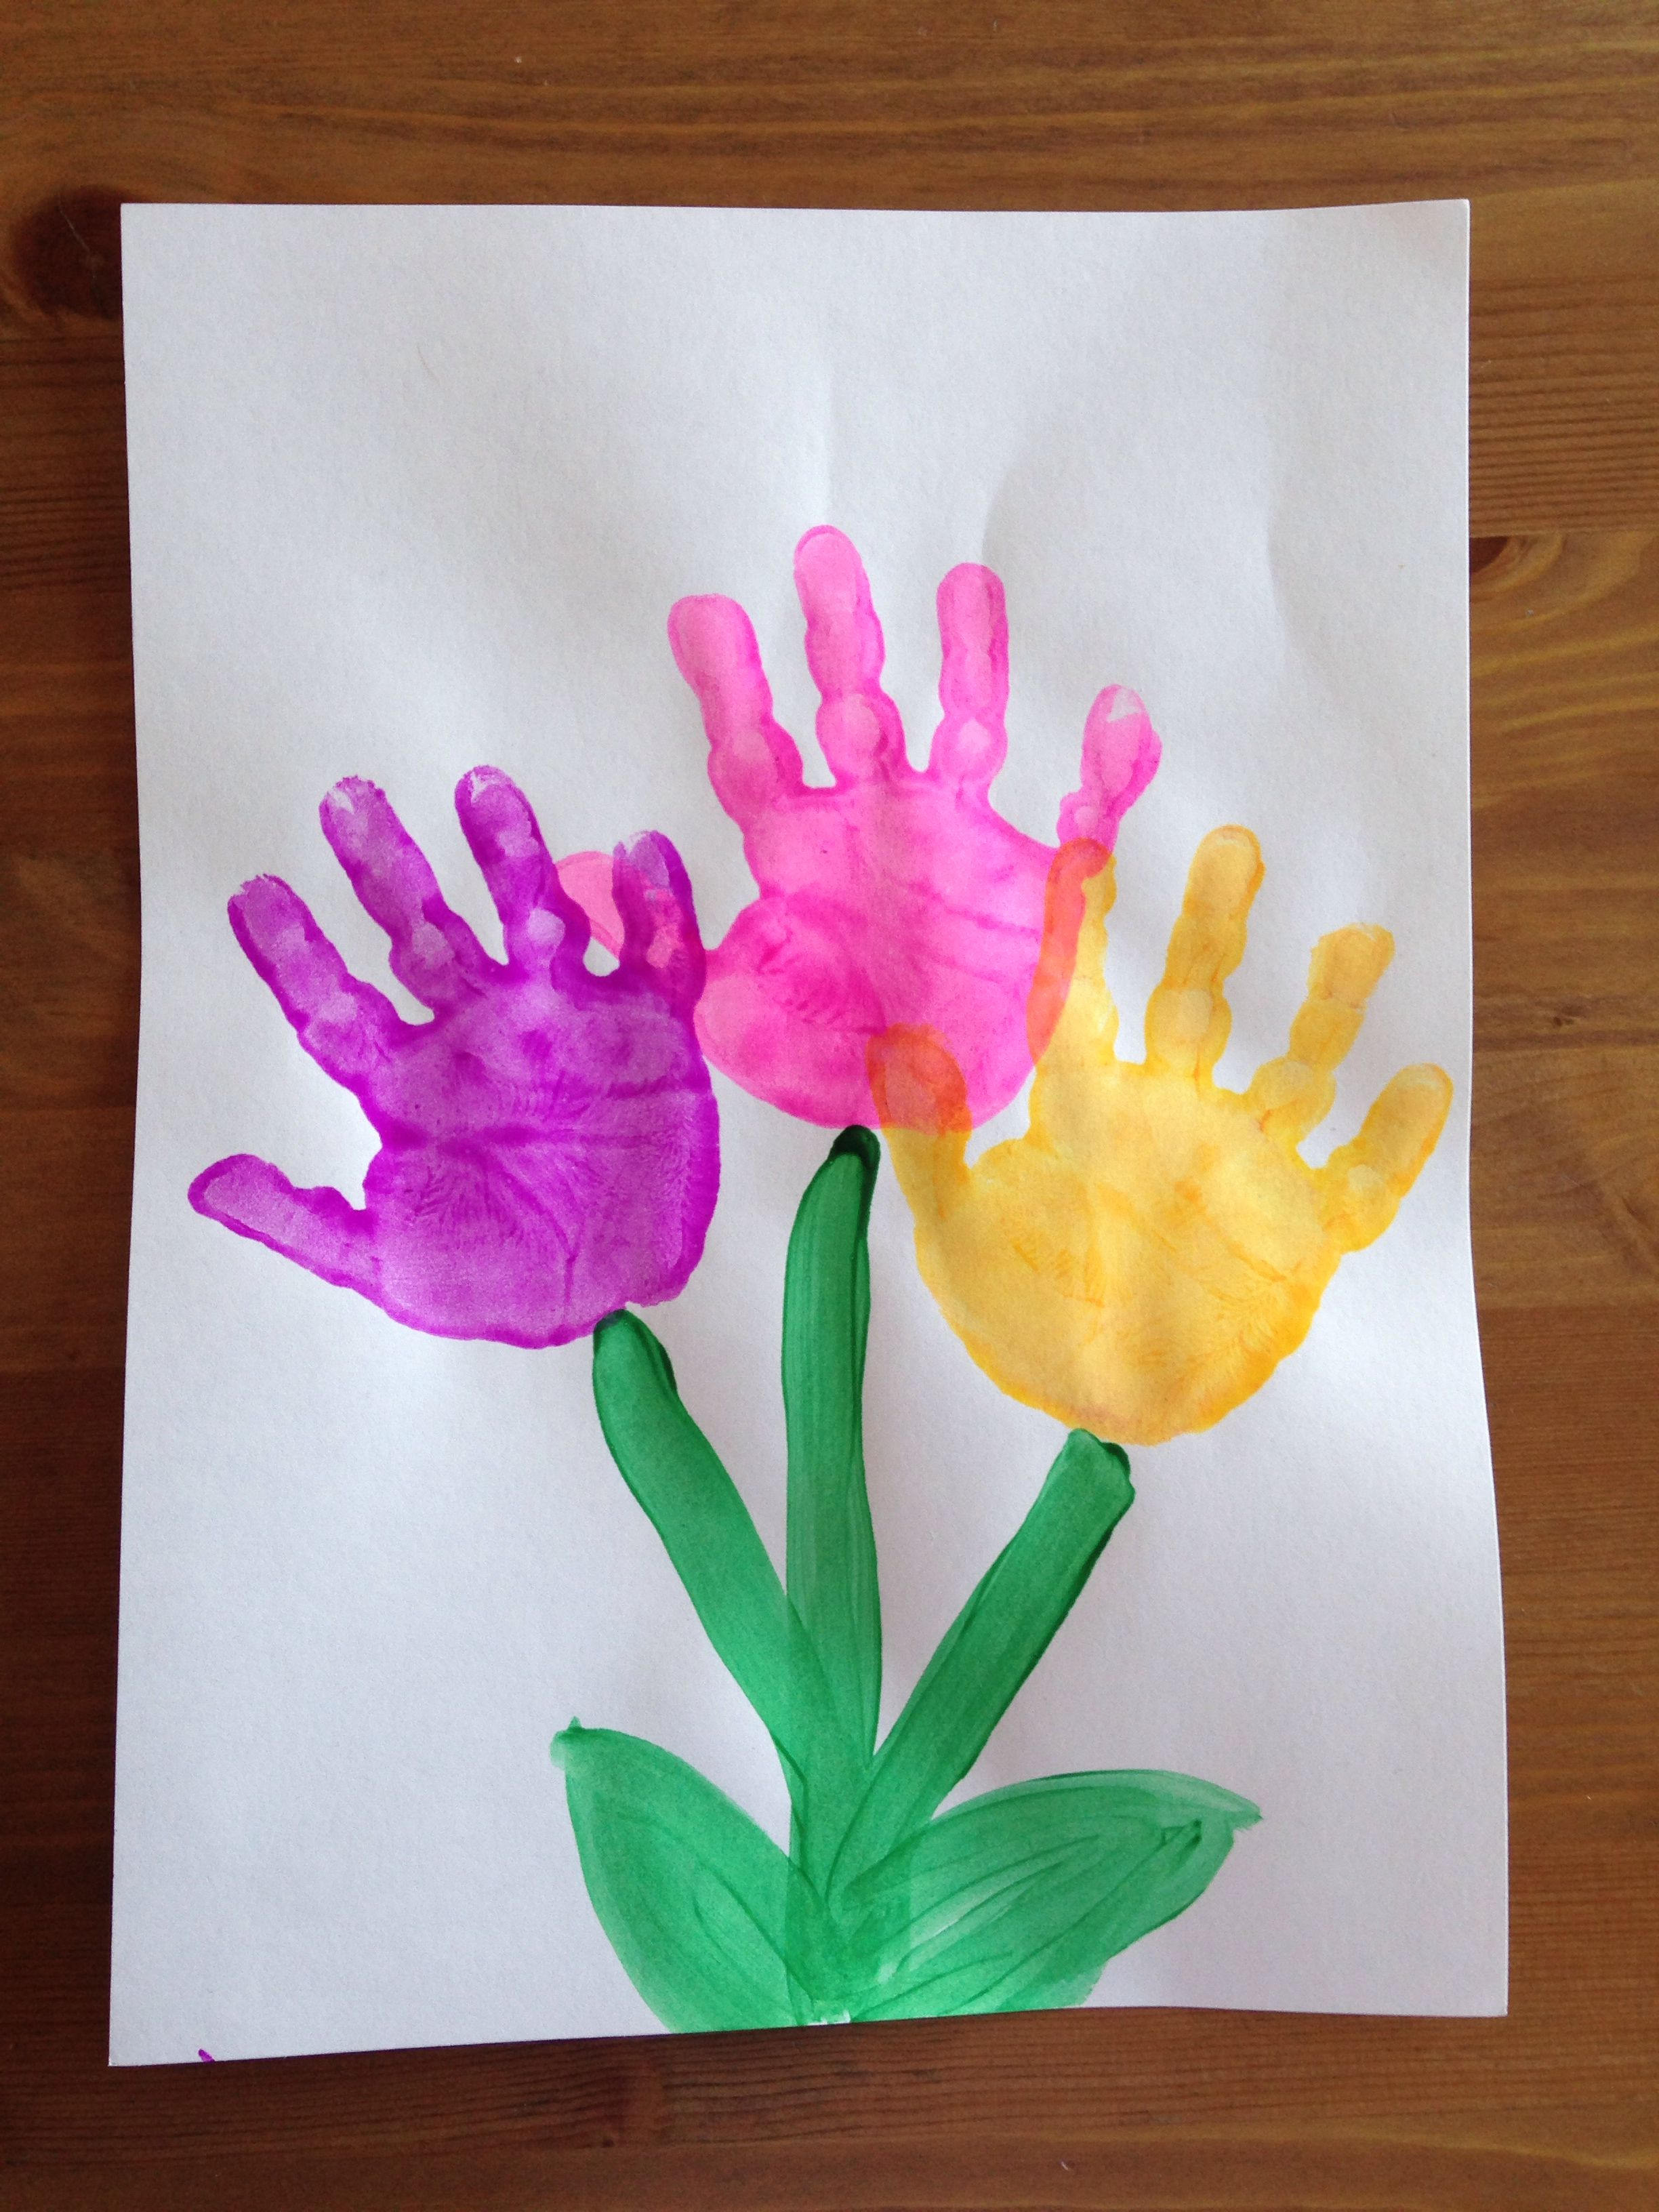 Plants arts and crafts - Flower Crafts